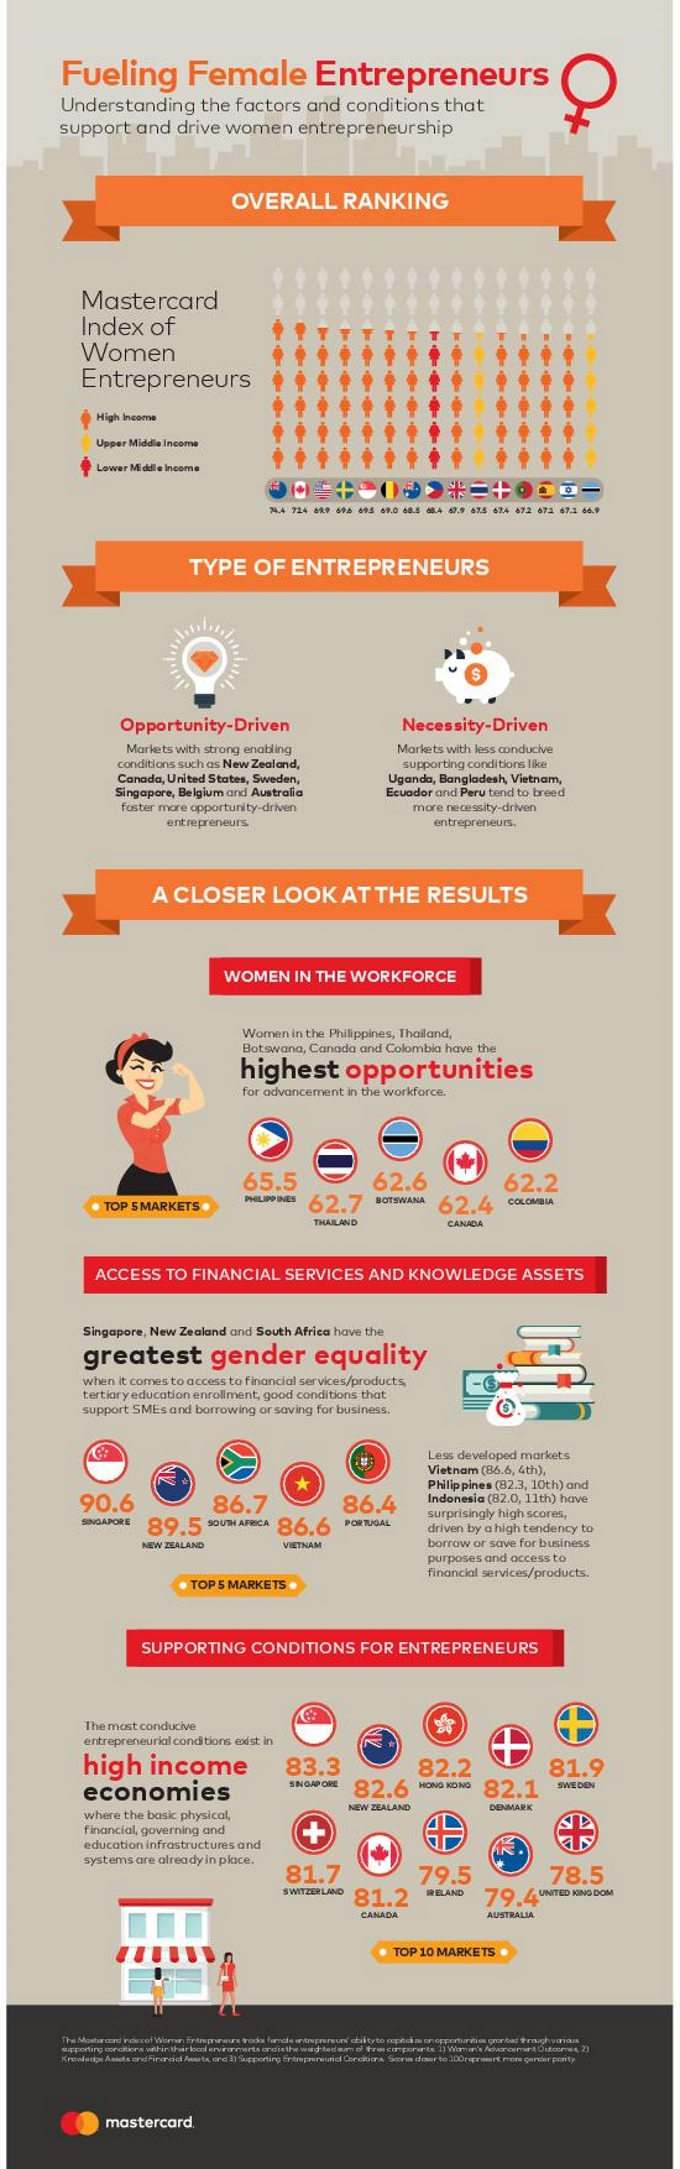 Infographic - Mastercard Index of Women Entrepreneurs 2017